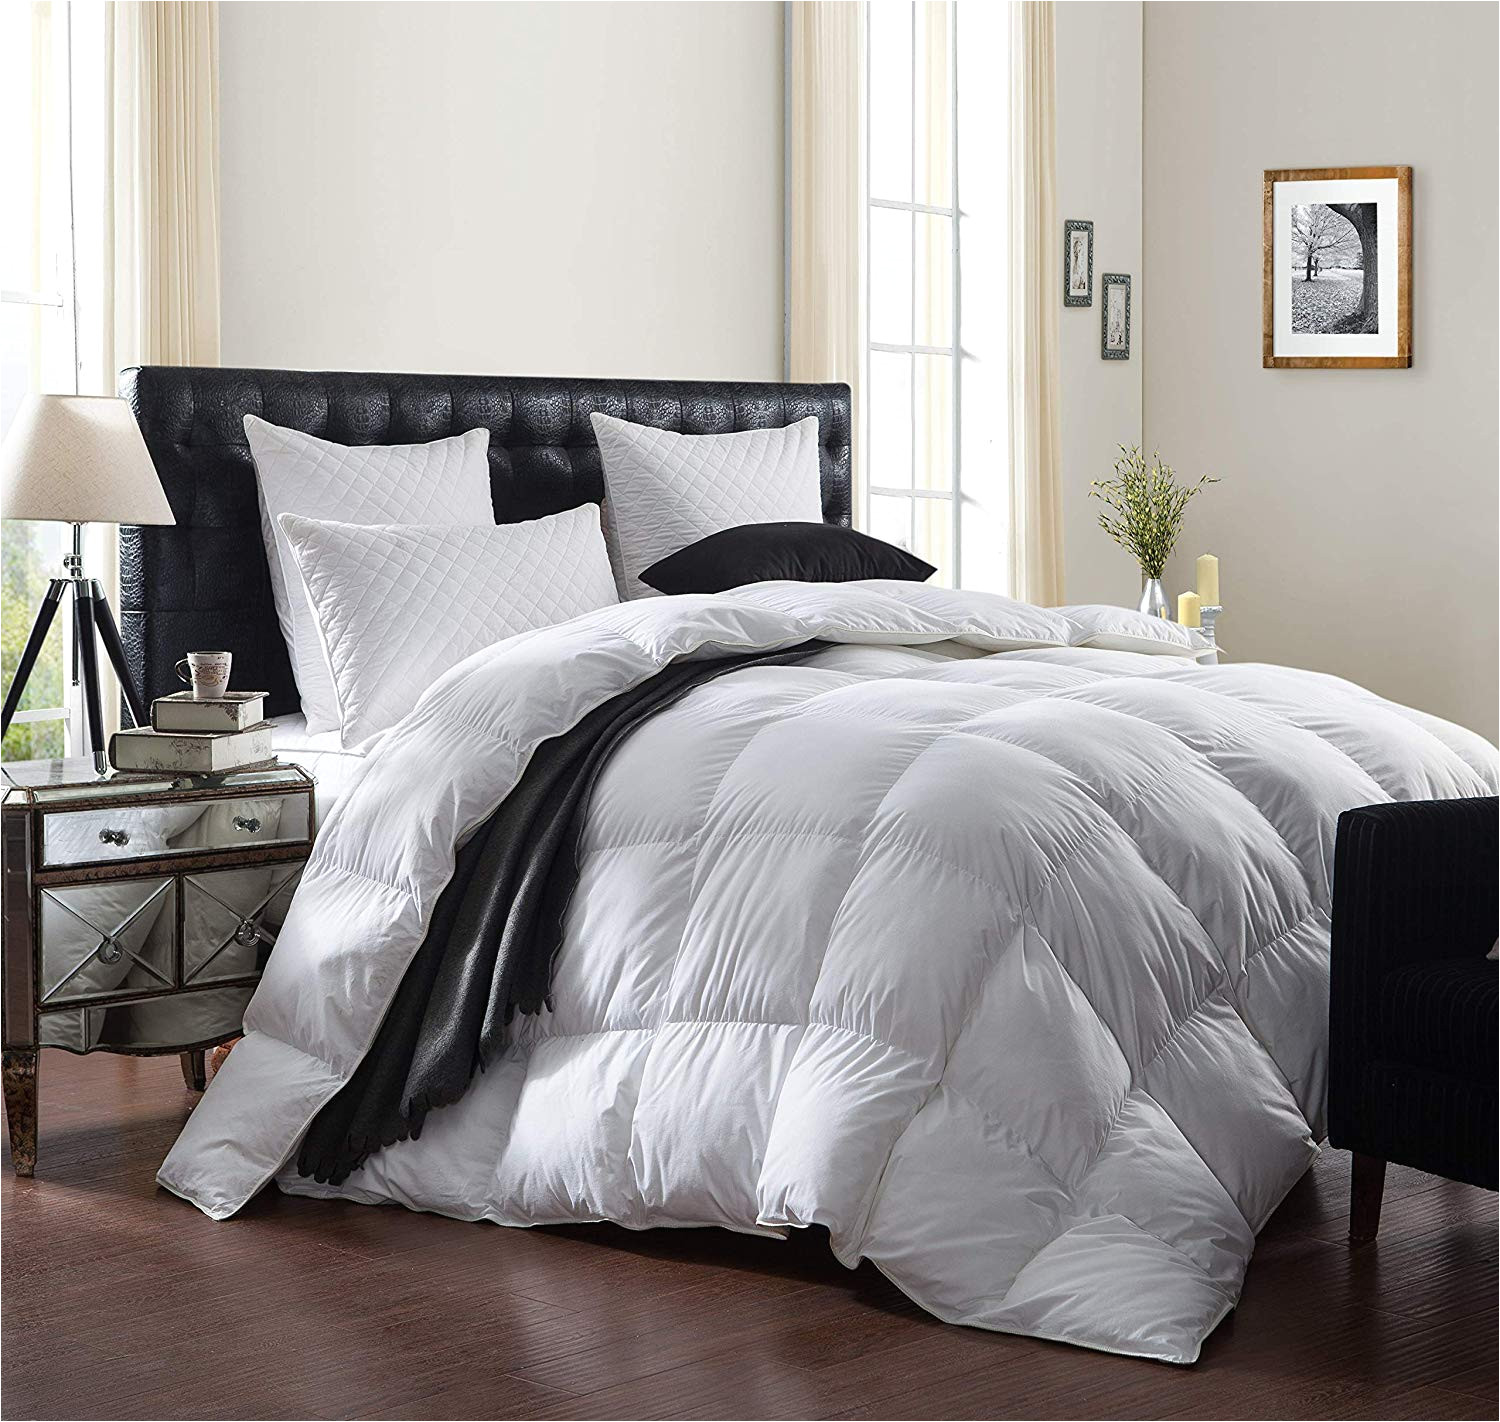 amazon com luxurious 1200 thread count goose down comforter duvet insert king size 1200tc 100 egyptian cotton cover 750 fill power